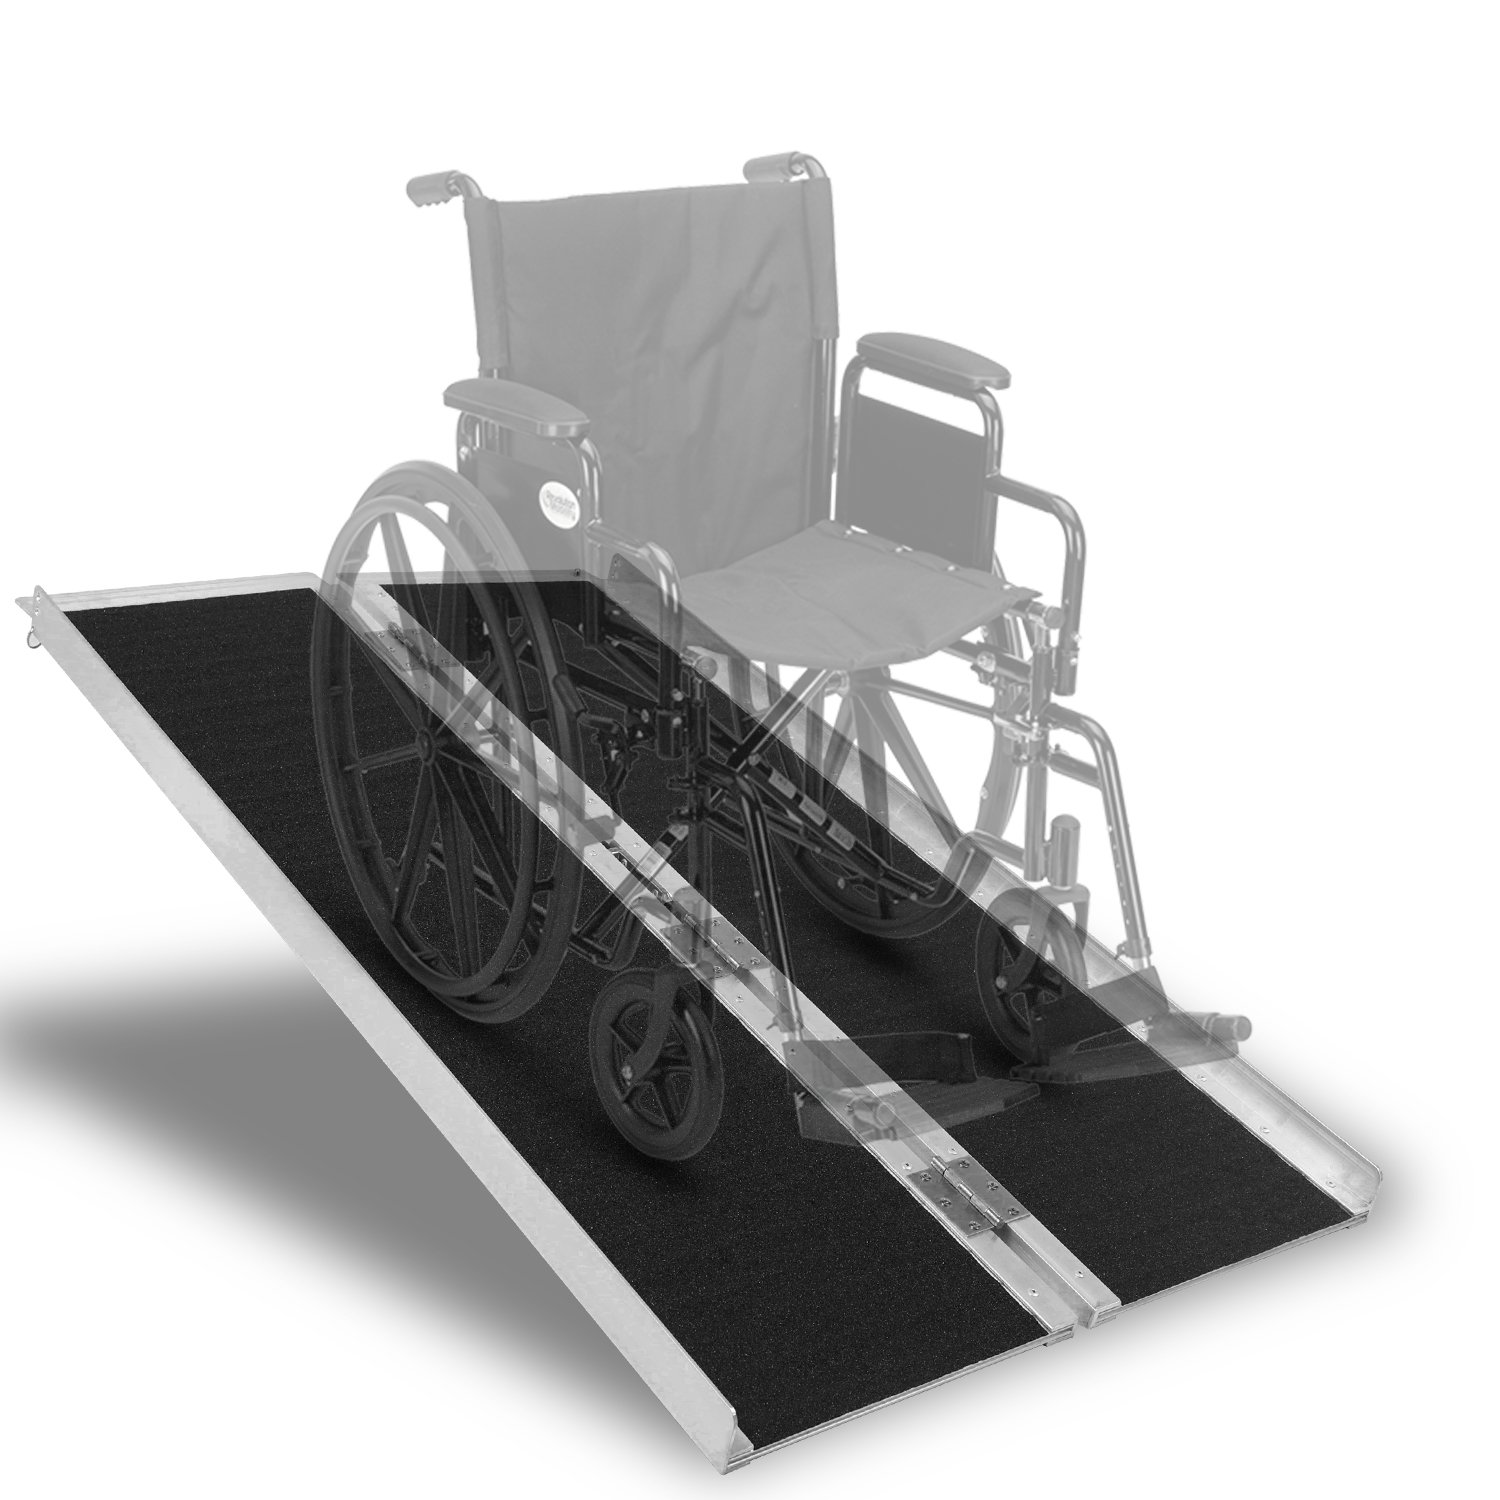 Aluminum Wheelchair Ramp Non-Skid Folding Mobility Scooter Portable Traction Ramp with Carrying Handle 4 Feet